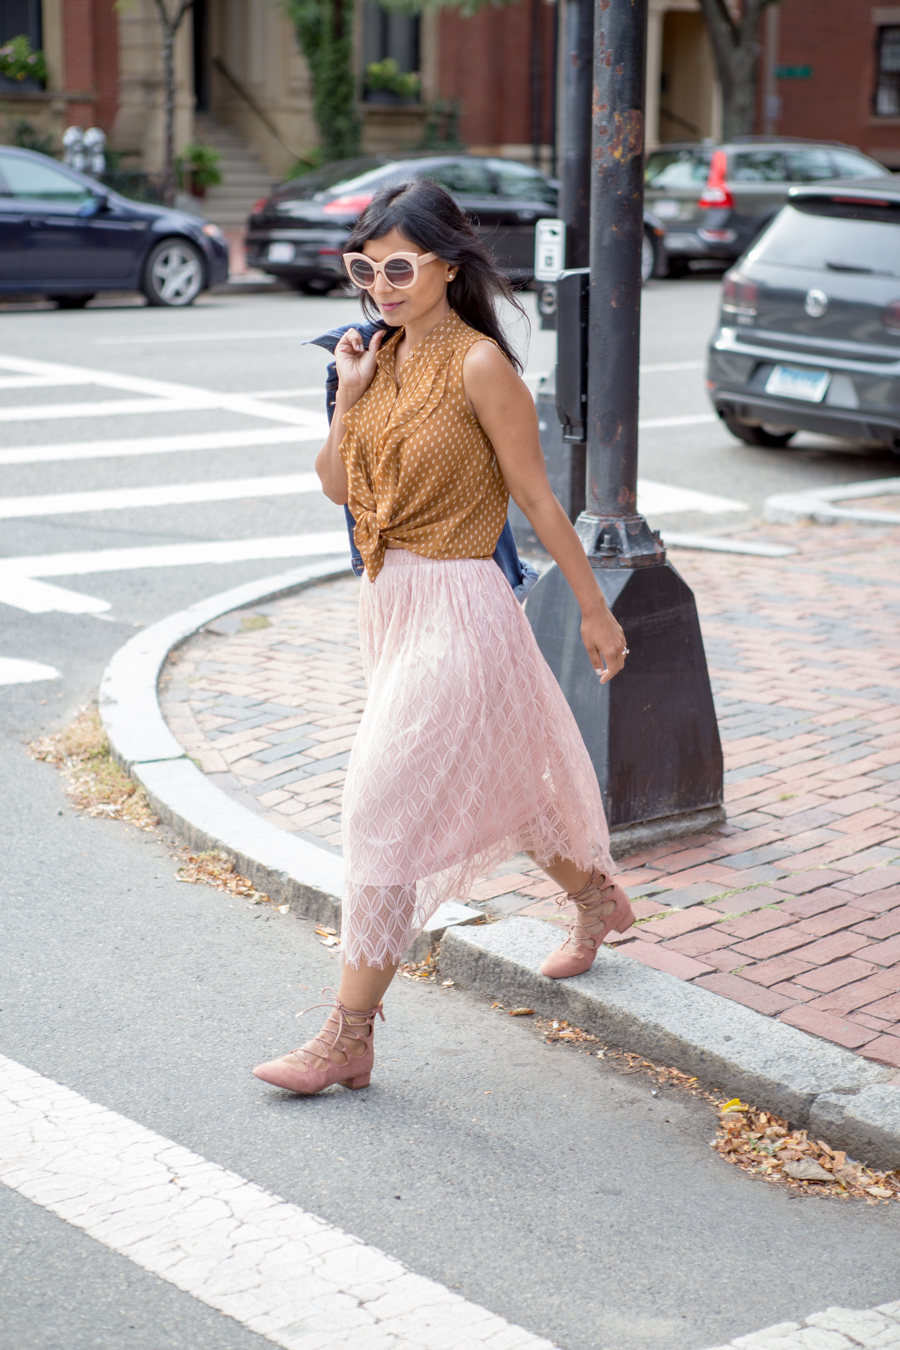 nyfw16, pink lace-up shoes, blush lace skirt, versatile style, casual outfit, dressy outfit, petite fashion, felted hat, fall wardrobe updates, how to wear your summer pieces longer, felted wool hat, brixton, forever 21, trendy, easy style tips